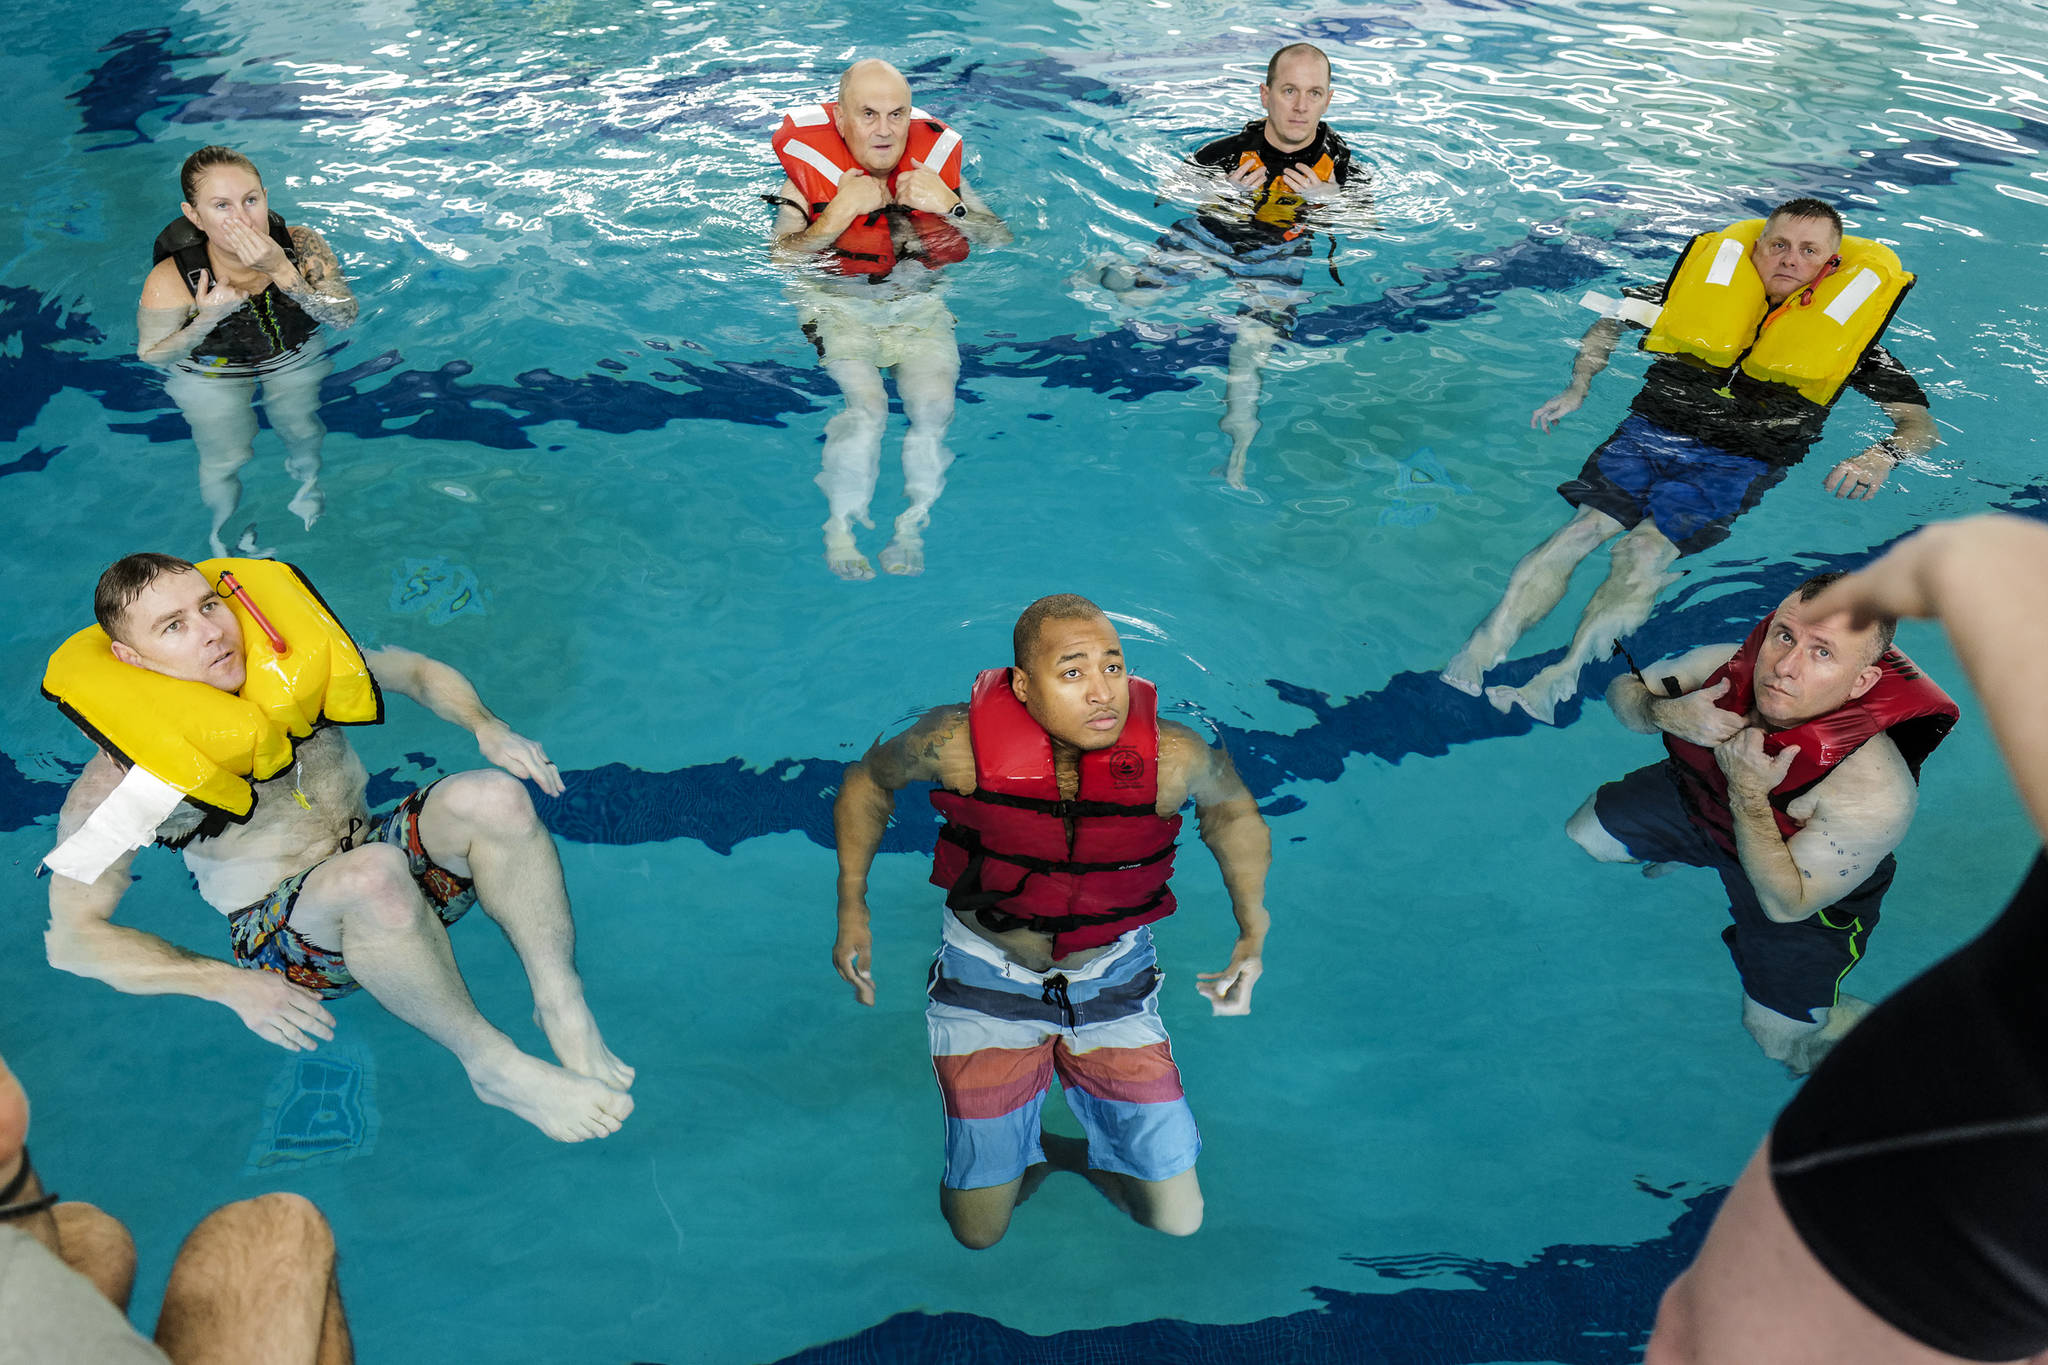 Members of the U.S. Coast Guard stationed in Juneau take a boating safety training class at the Augustus Brown Swimming Pool on Tuesday, Nov. 19, 2019. The class will qualify the members to teach students around the state about the use and importance of life vests. (Michael Penn | Juneau Empire)